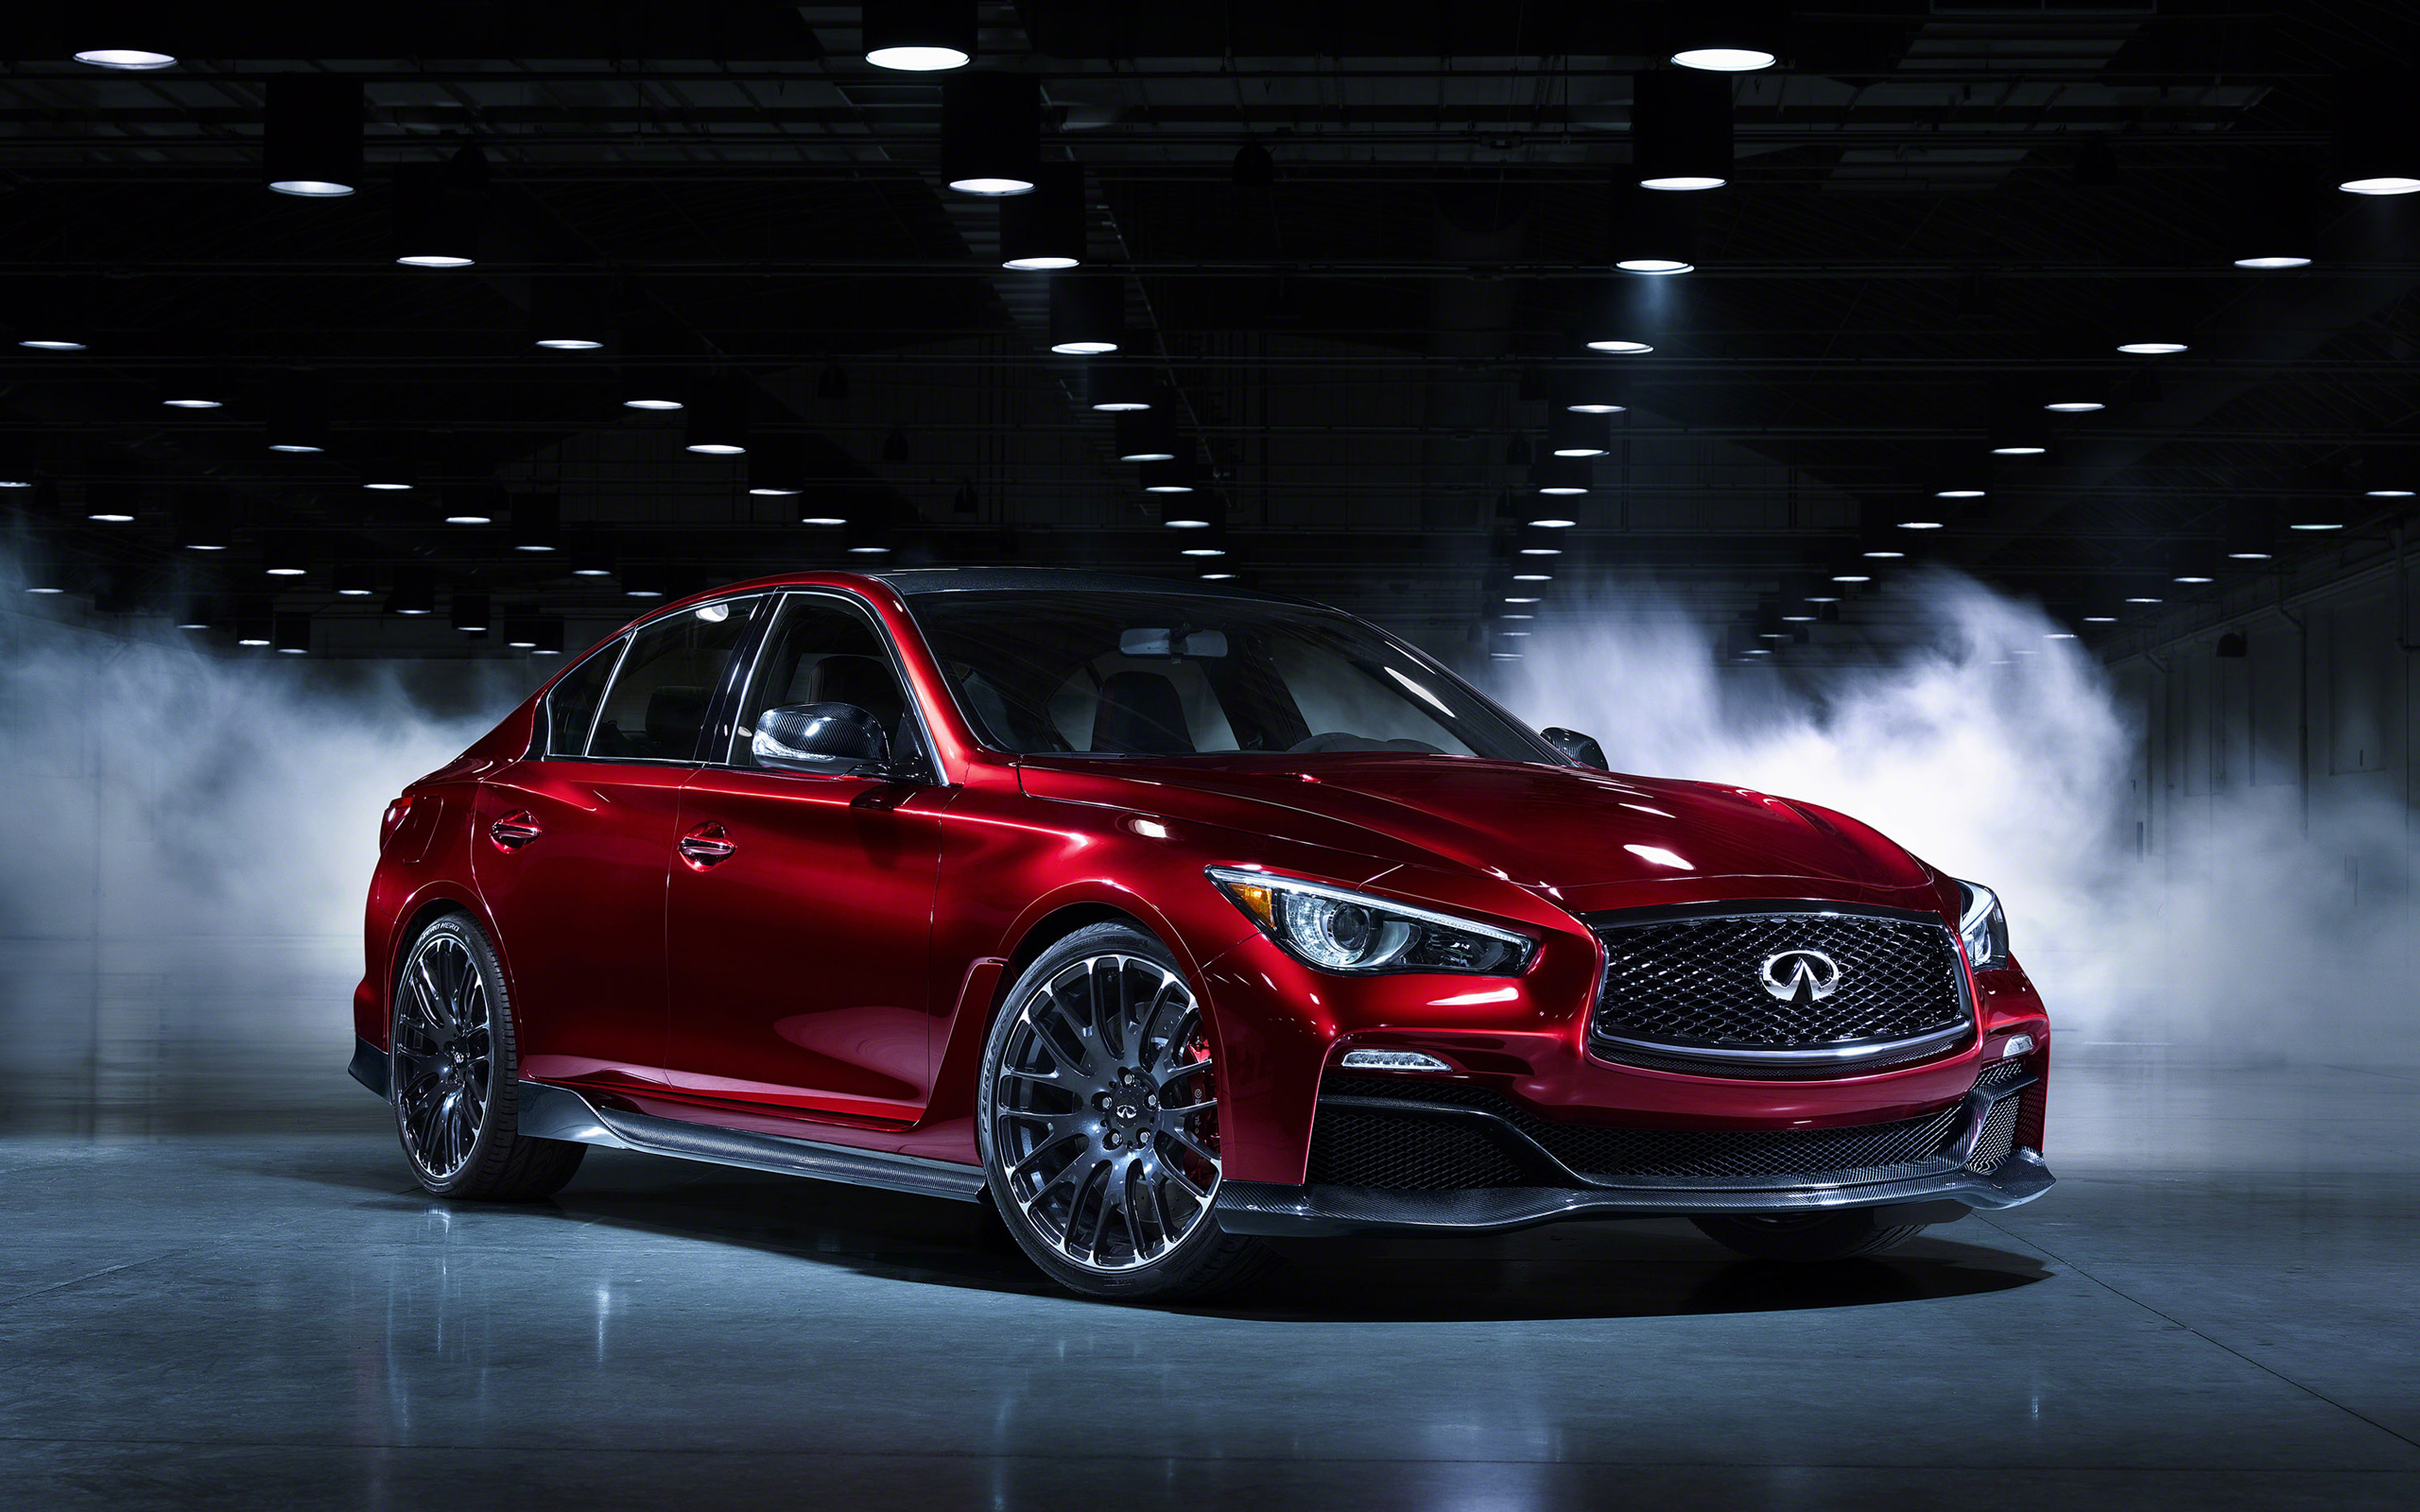 Infiniti Q50 Wallpapers and Background Images   stmednet 2560x1600